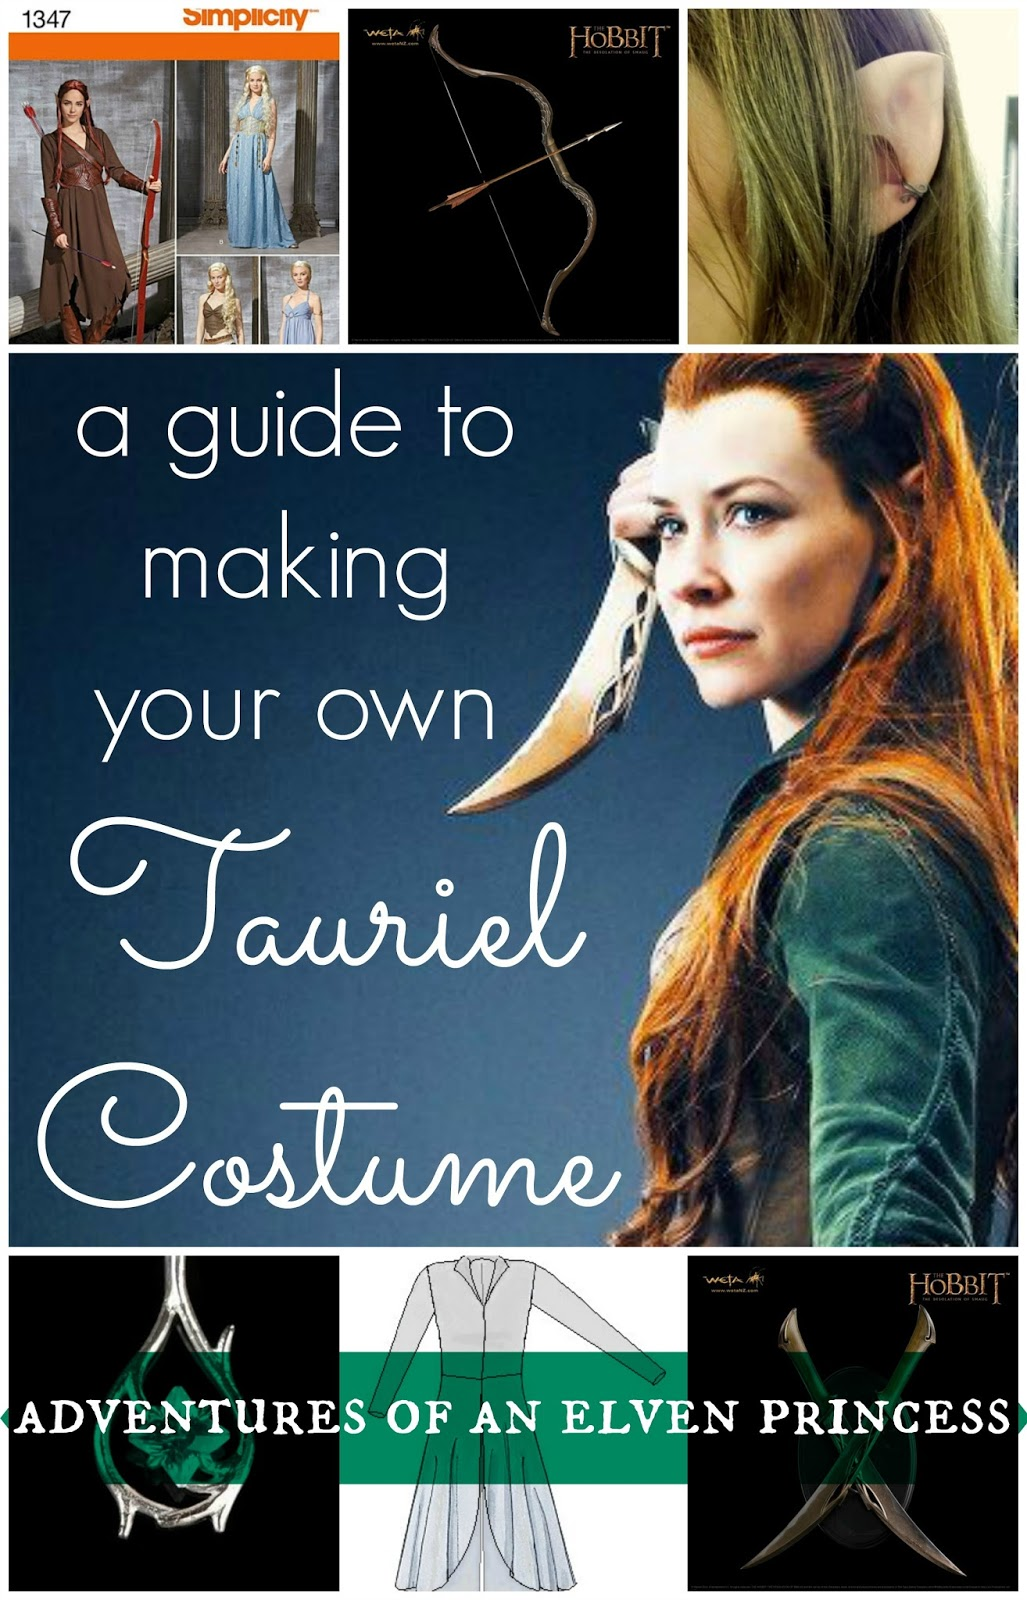 The adventures of an elven princess a guide to making your own a guide to making your own tauriel costume solutioingenieria Image collections